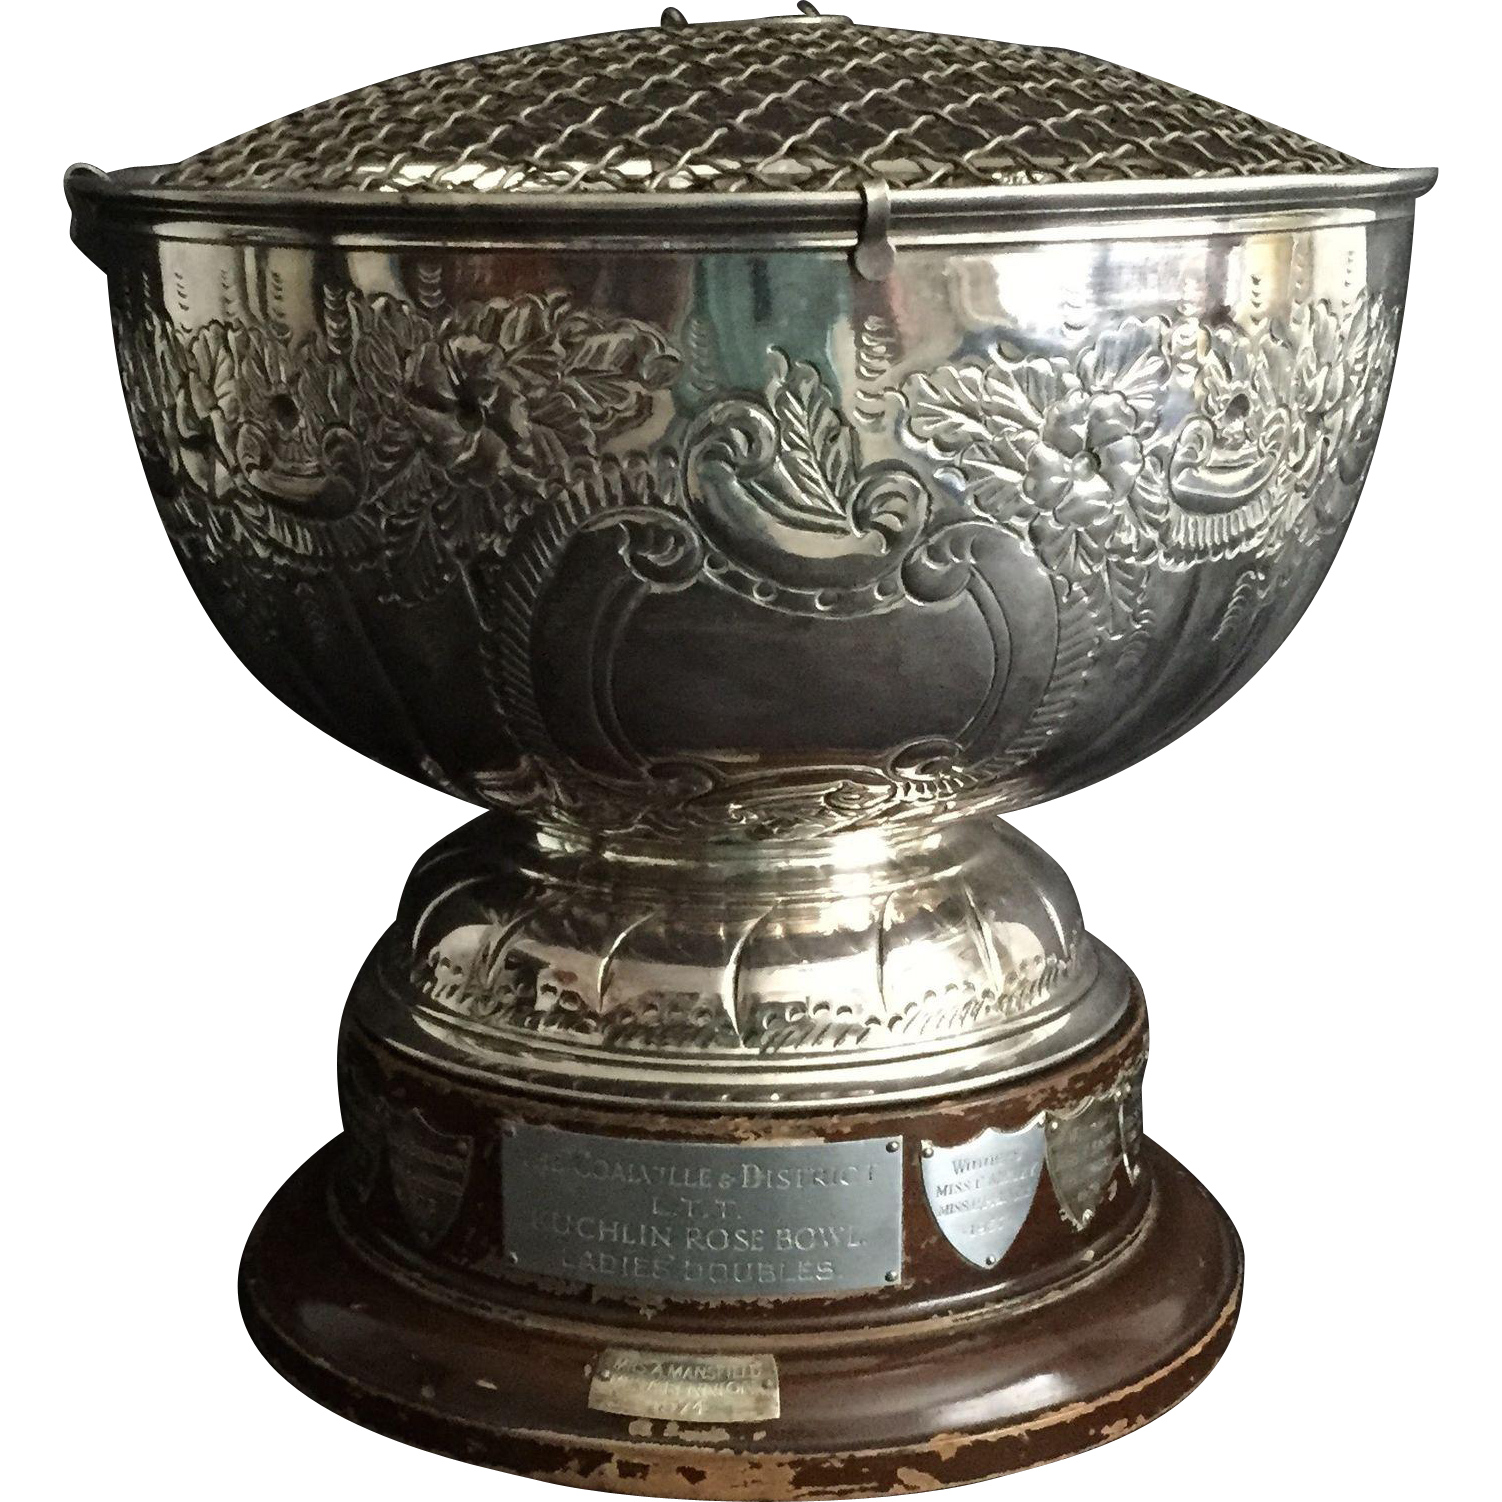 English Silver Plate Rose Bowl TENNIS Championship Trophy Cup on a Wooden Stand, 1957 - 1974